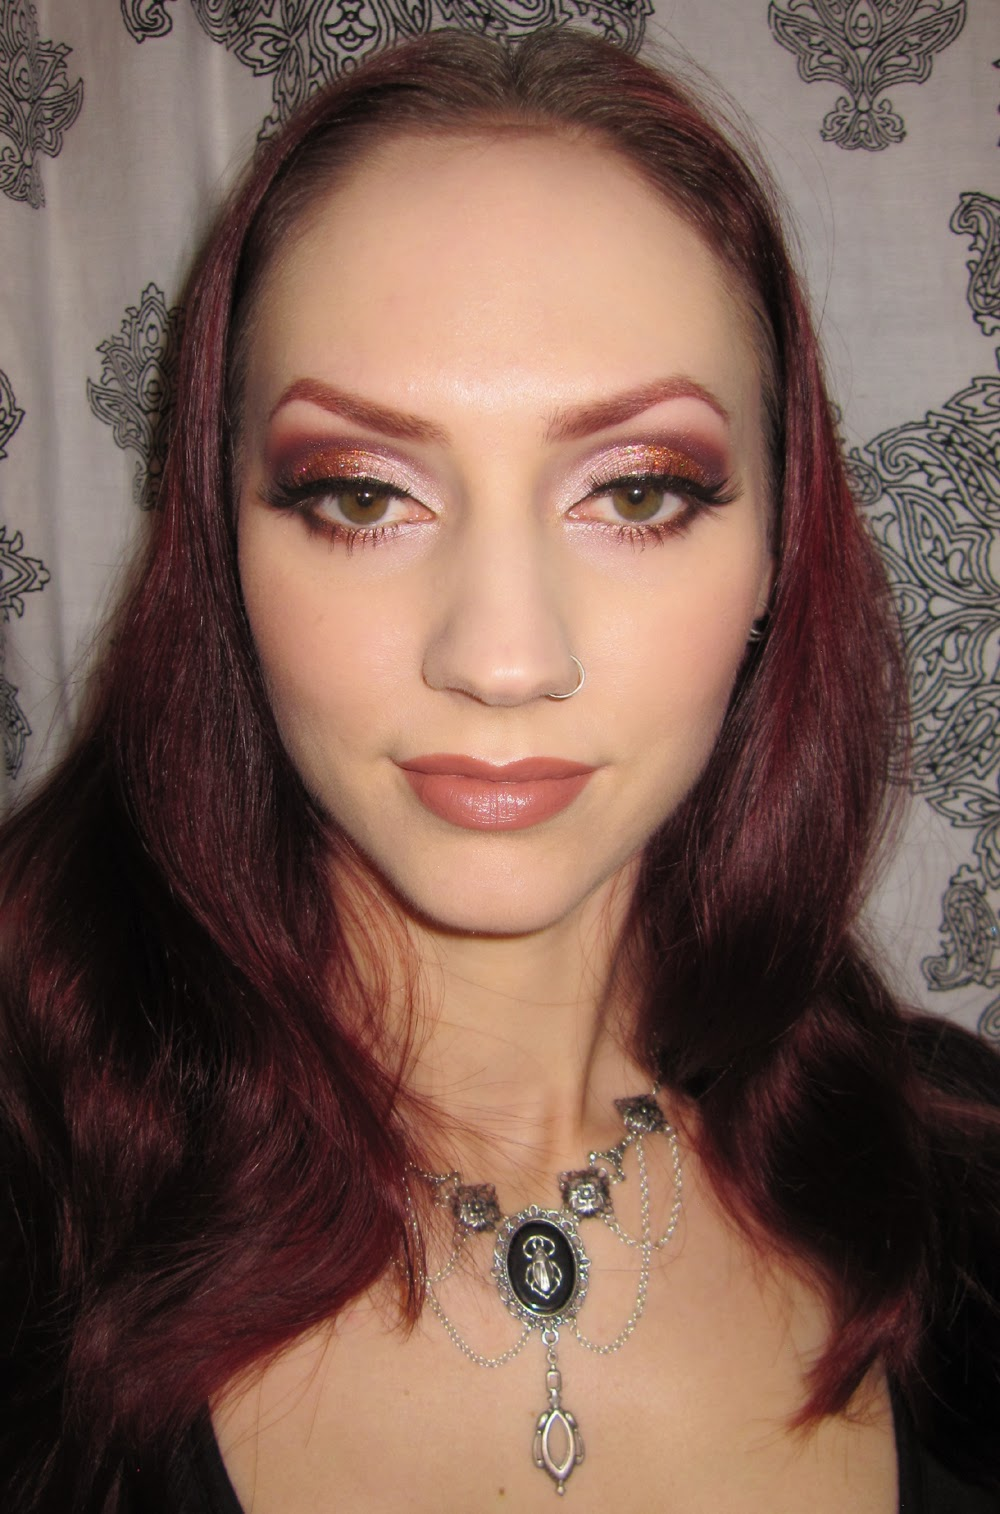 http://themoonmaiden-blix.blogspot.com/2014/11/peach-and-plum-wine-glitter-eye-makeup.html